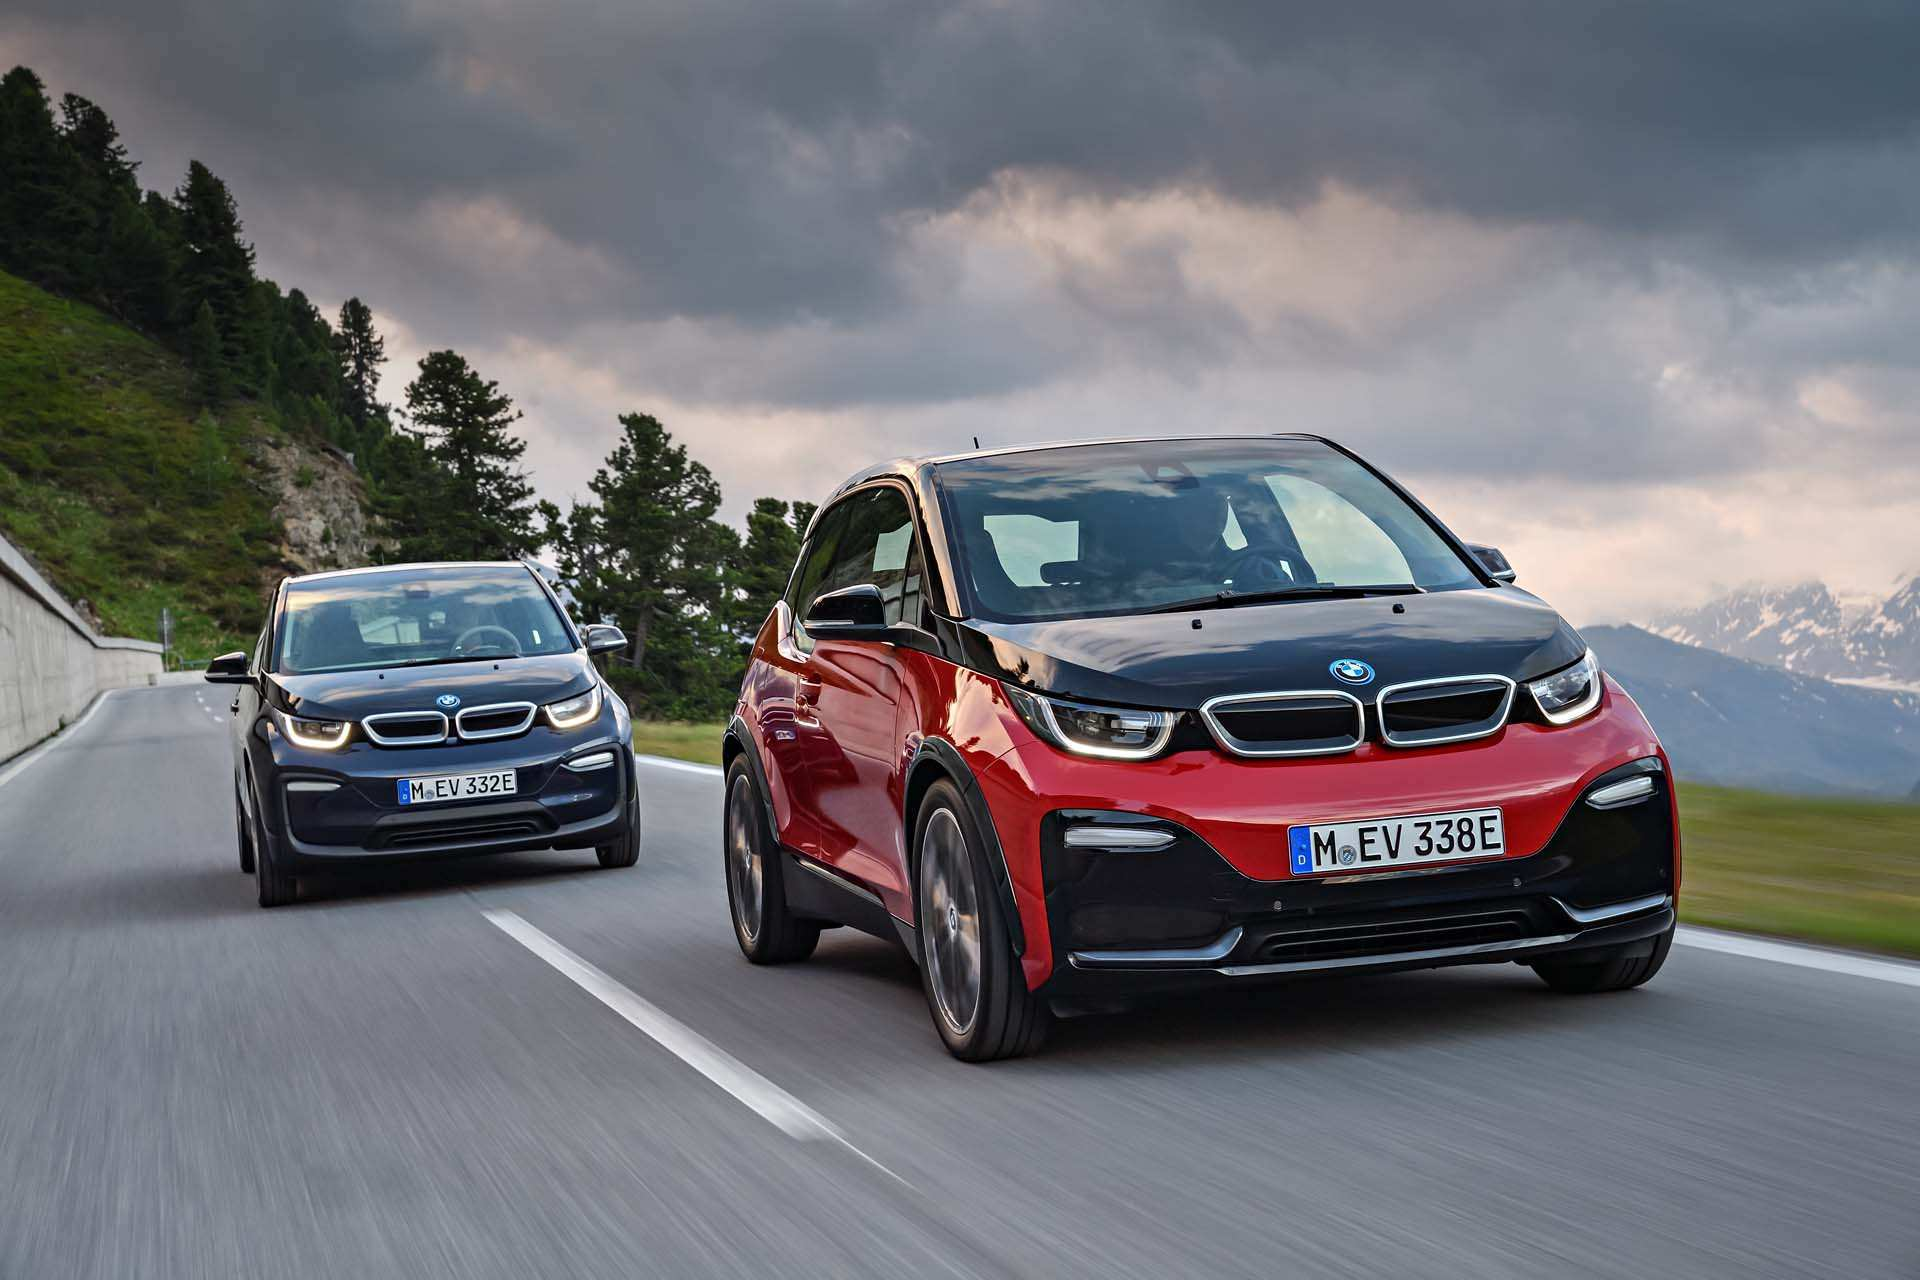 55 New 2020 Bmw I3 Research New by 2020 Bmw I3